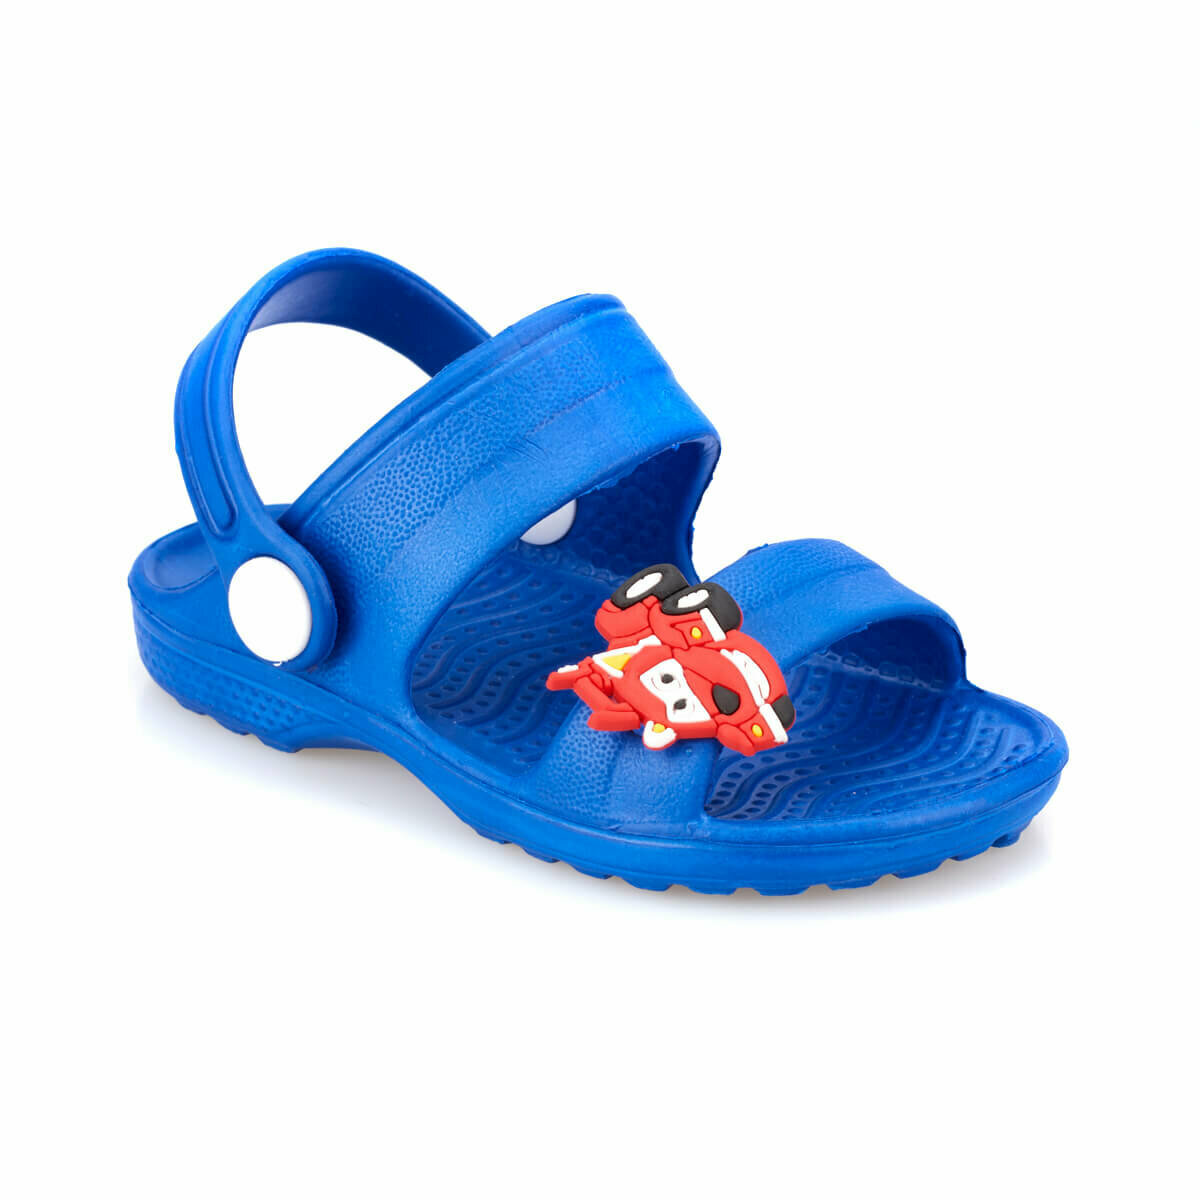 FLO TEGY Saks Male Child Slippers KINETIX